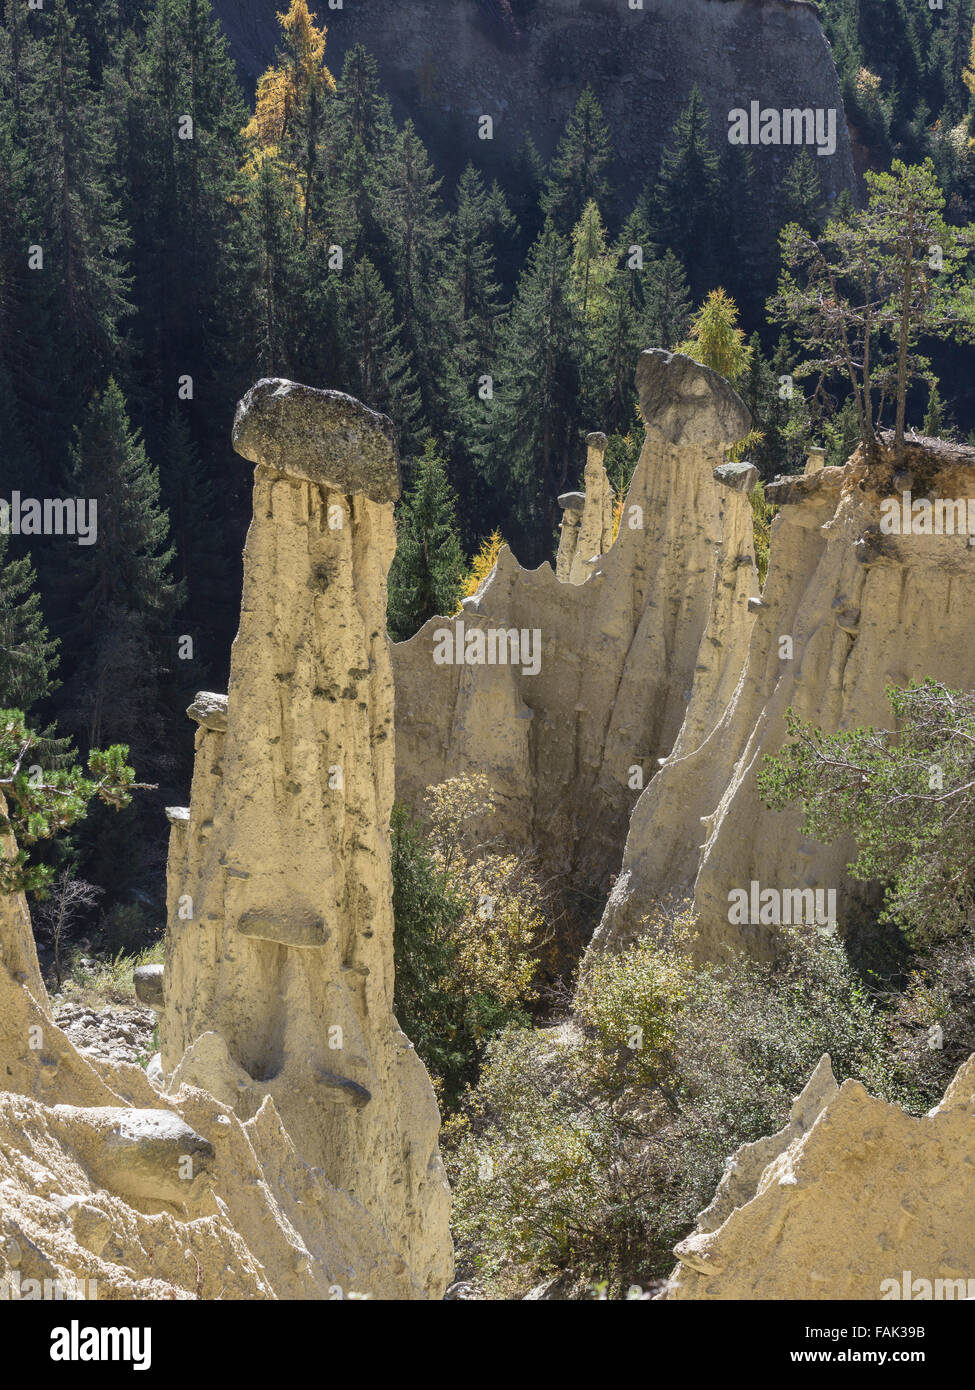 Earth pyramids in Percha, South Tyrol, Italy - Stock Image